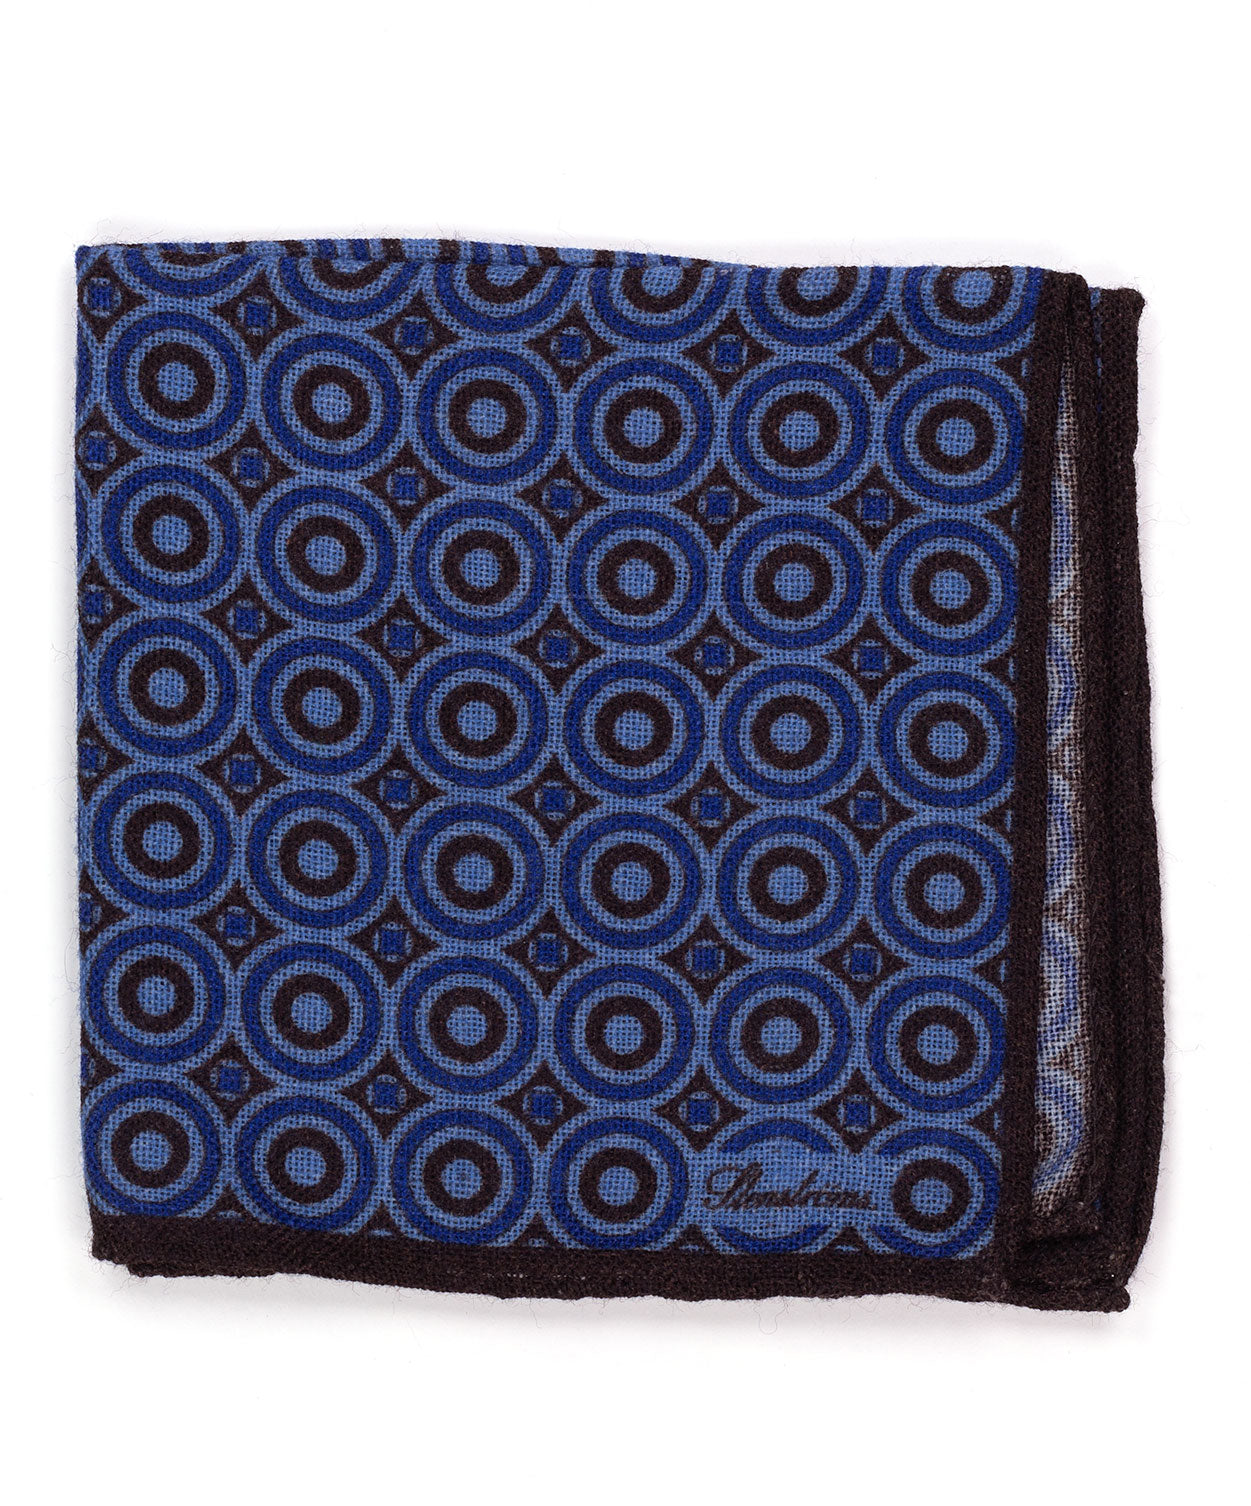 Cocoa/Blue/Powder Blue Circle in Circle Pocket Square